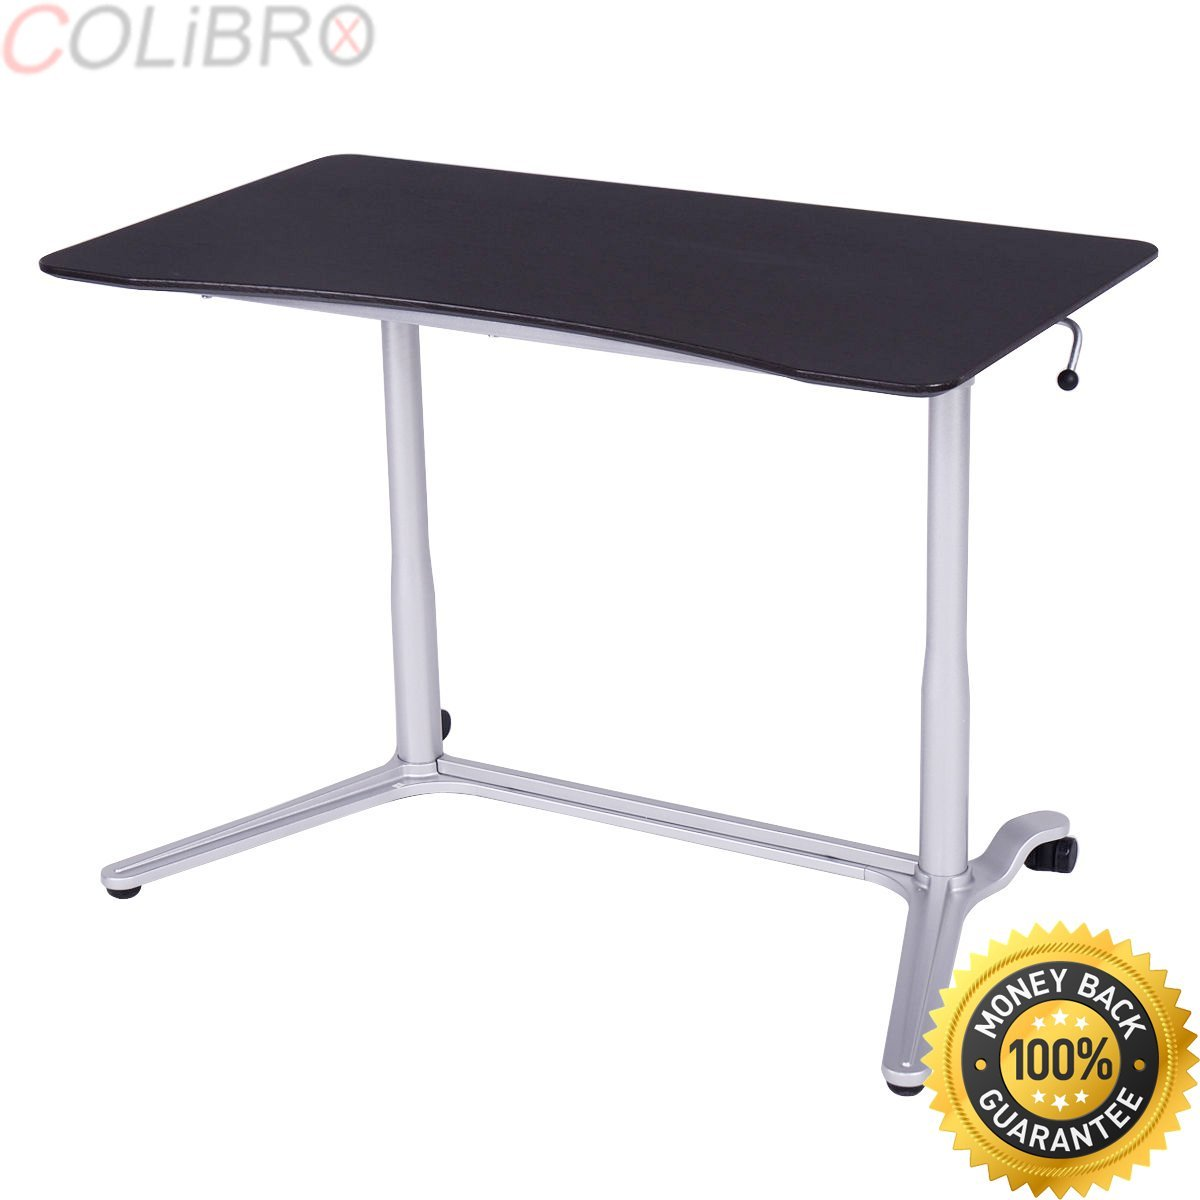 COLIBROX--Height Adjustable Computer Desk Laptop Table Rolling Sit to Stand Notebook New. laptop stand for desk. portable laptop stand foldable. adjustable laptop stand amazon.laptop desk.